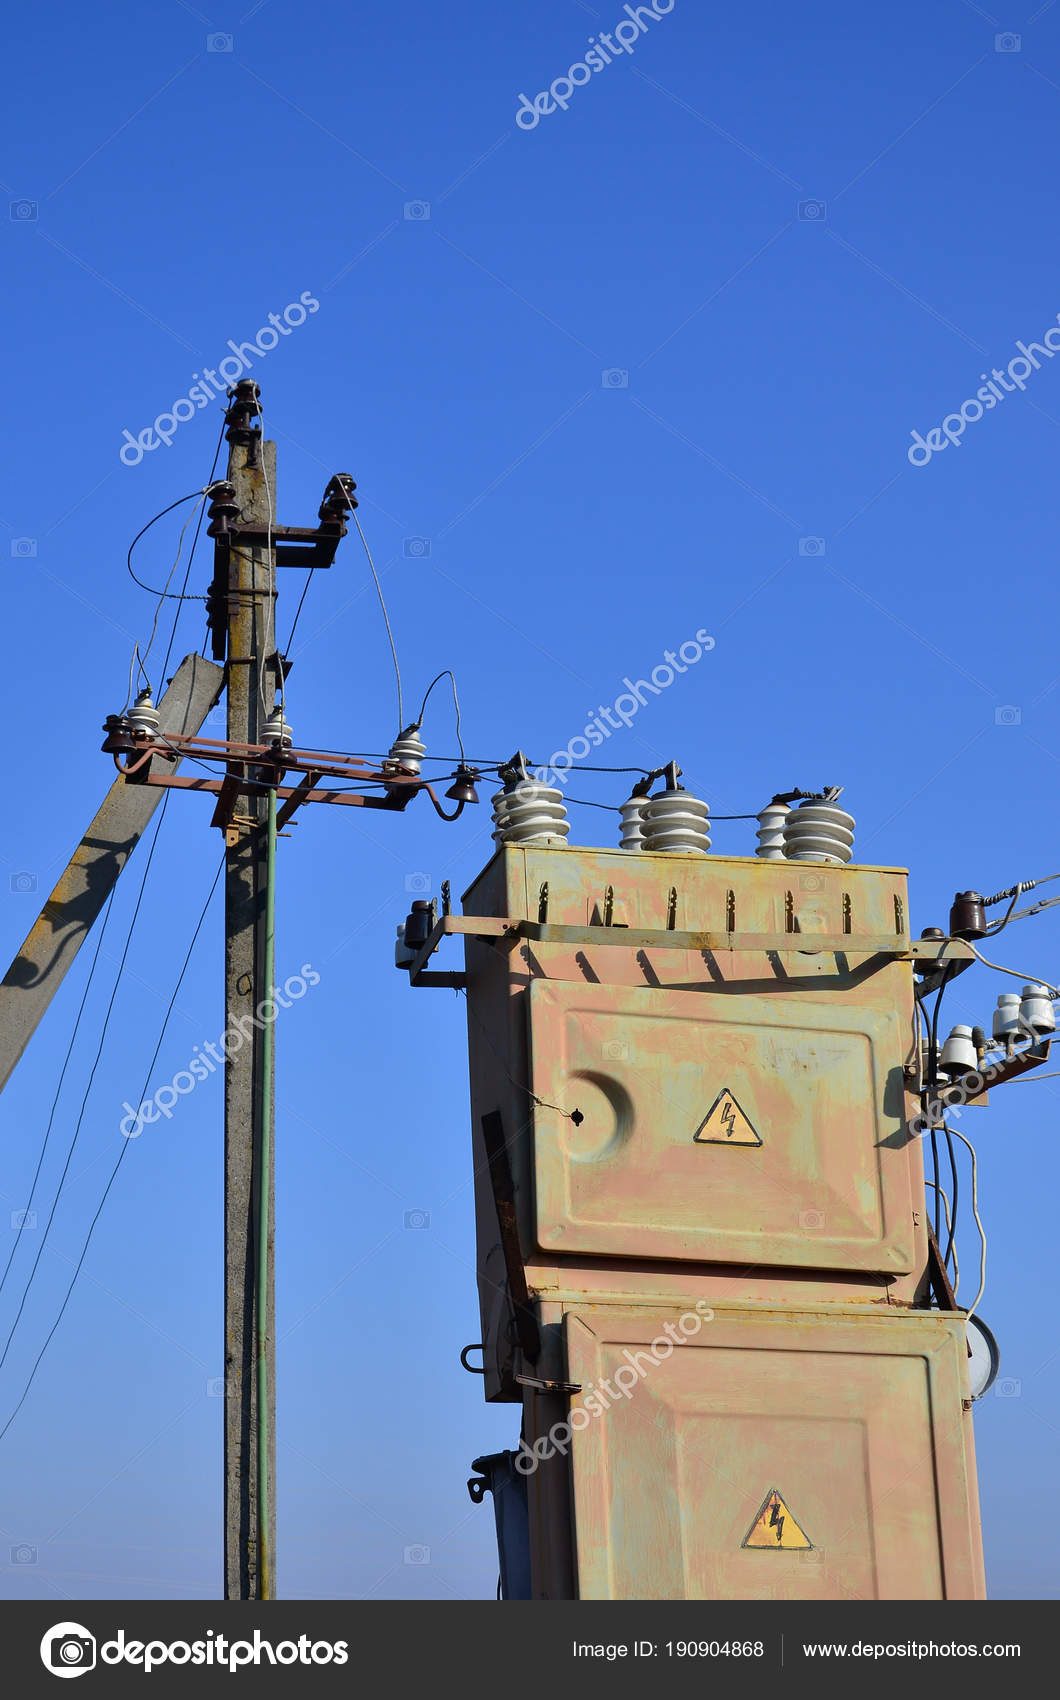 hight resolution of old obsolete electrical transformer background cloudless blue sky device distribution stock photo